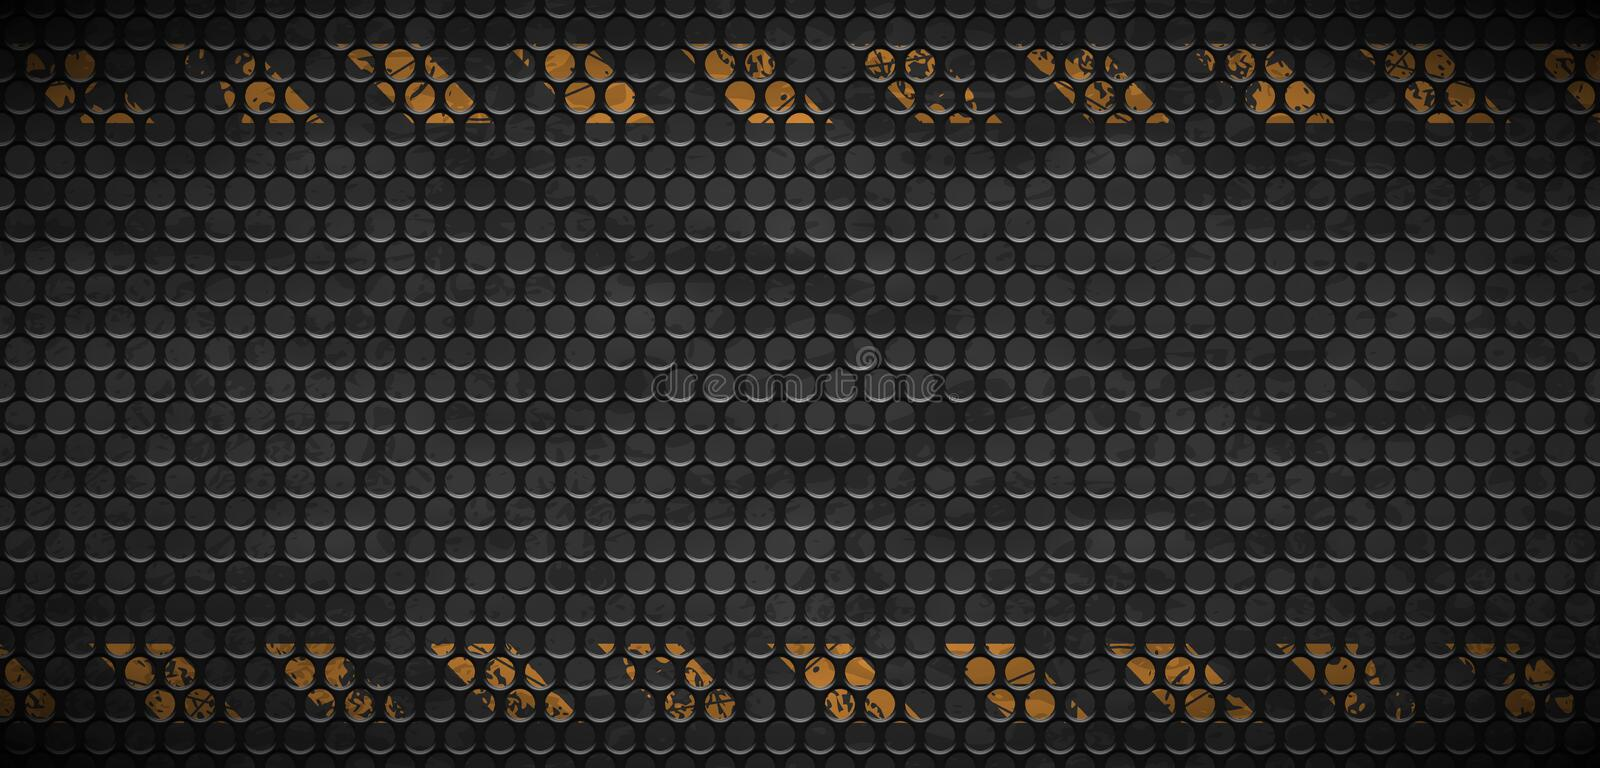 Vector pattern of metal rusty grid urban grunge background. Old black iron grill industrial texture. Web page industrial banner vector illustration